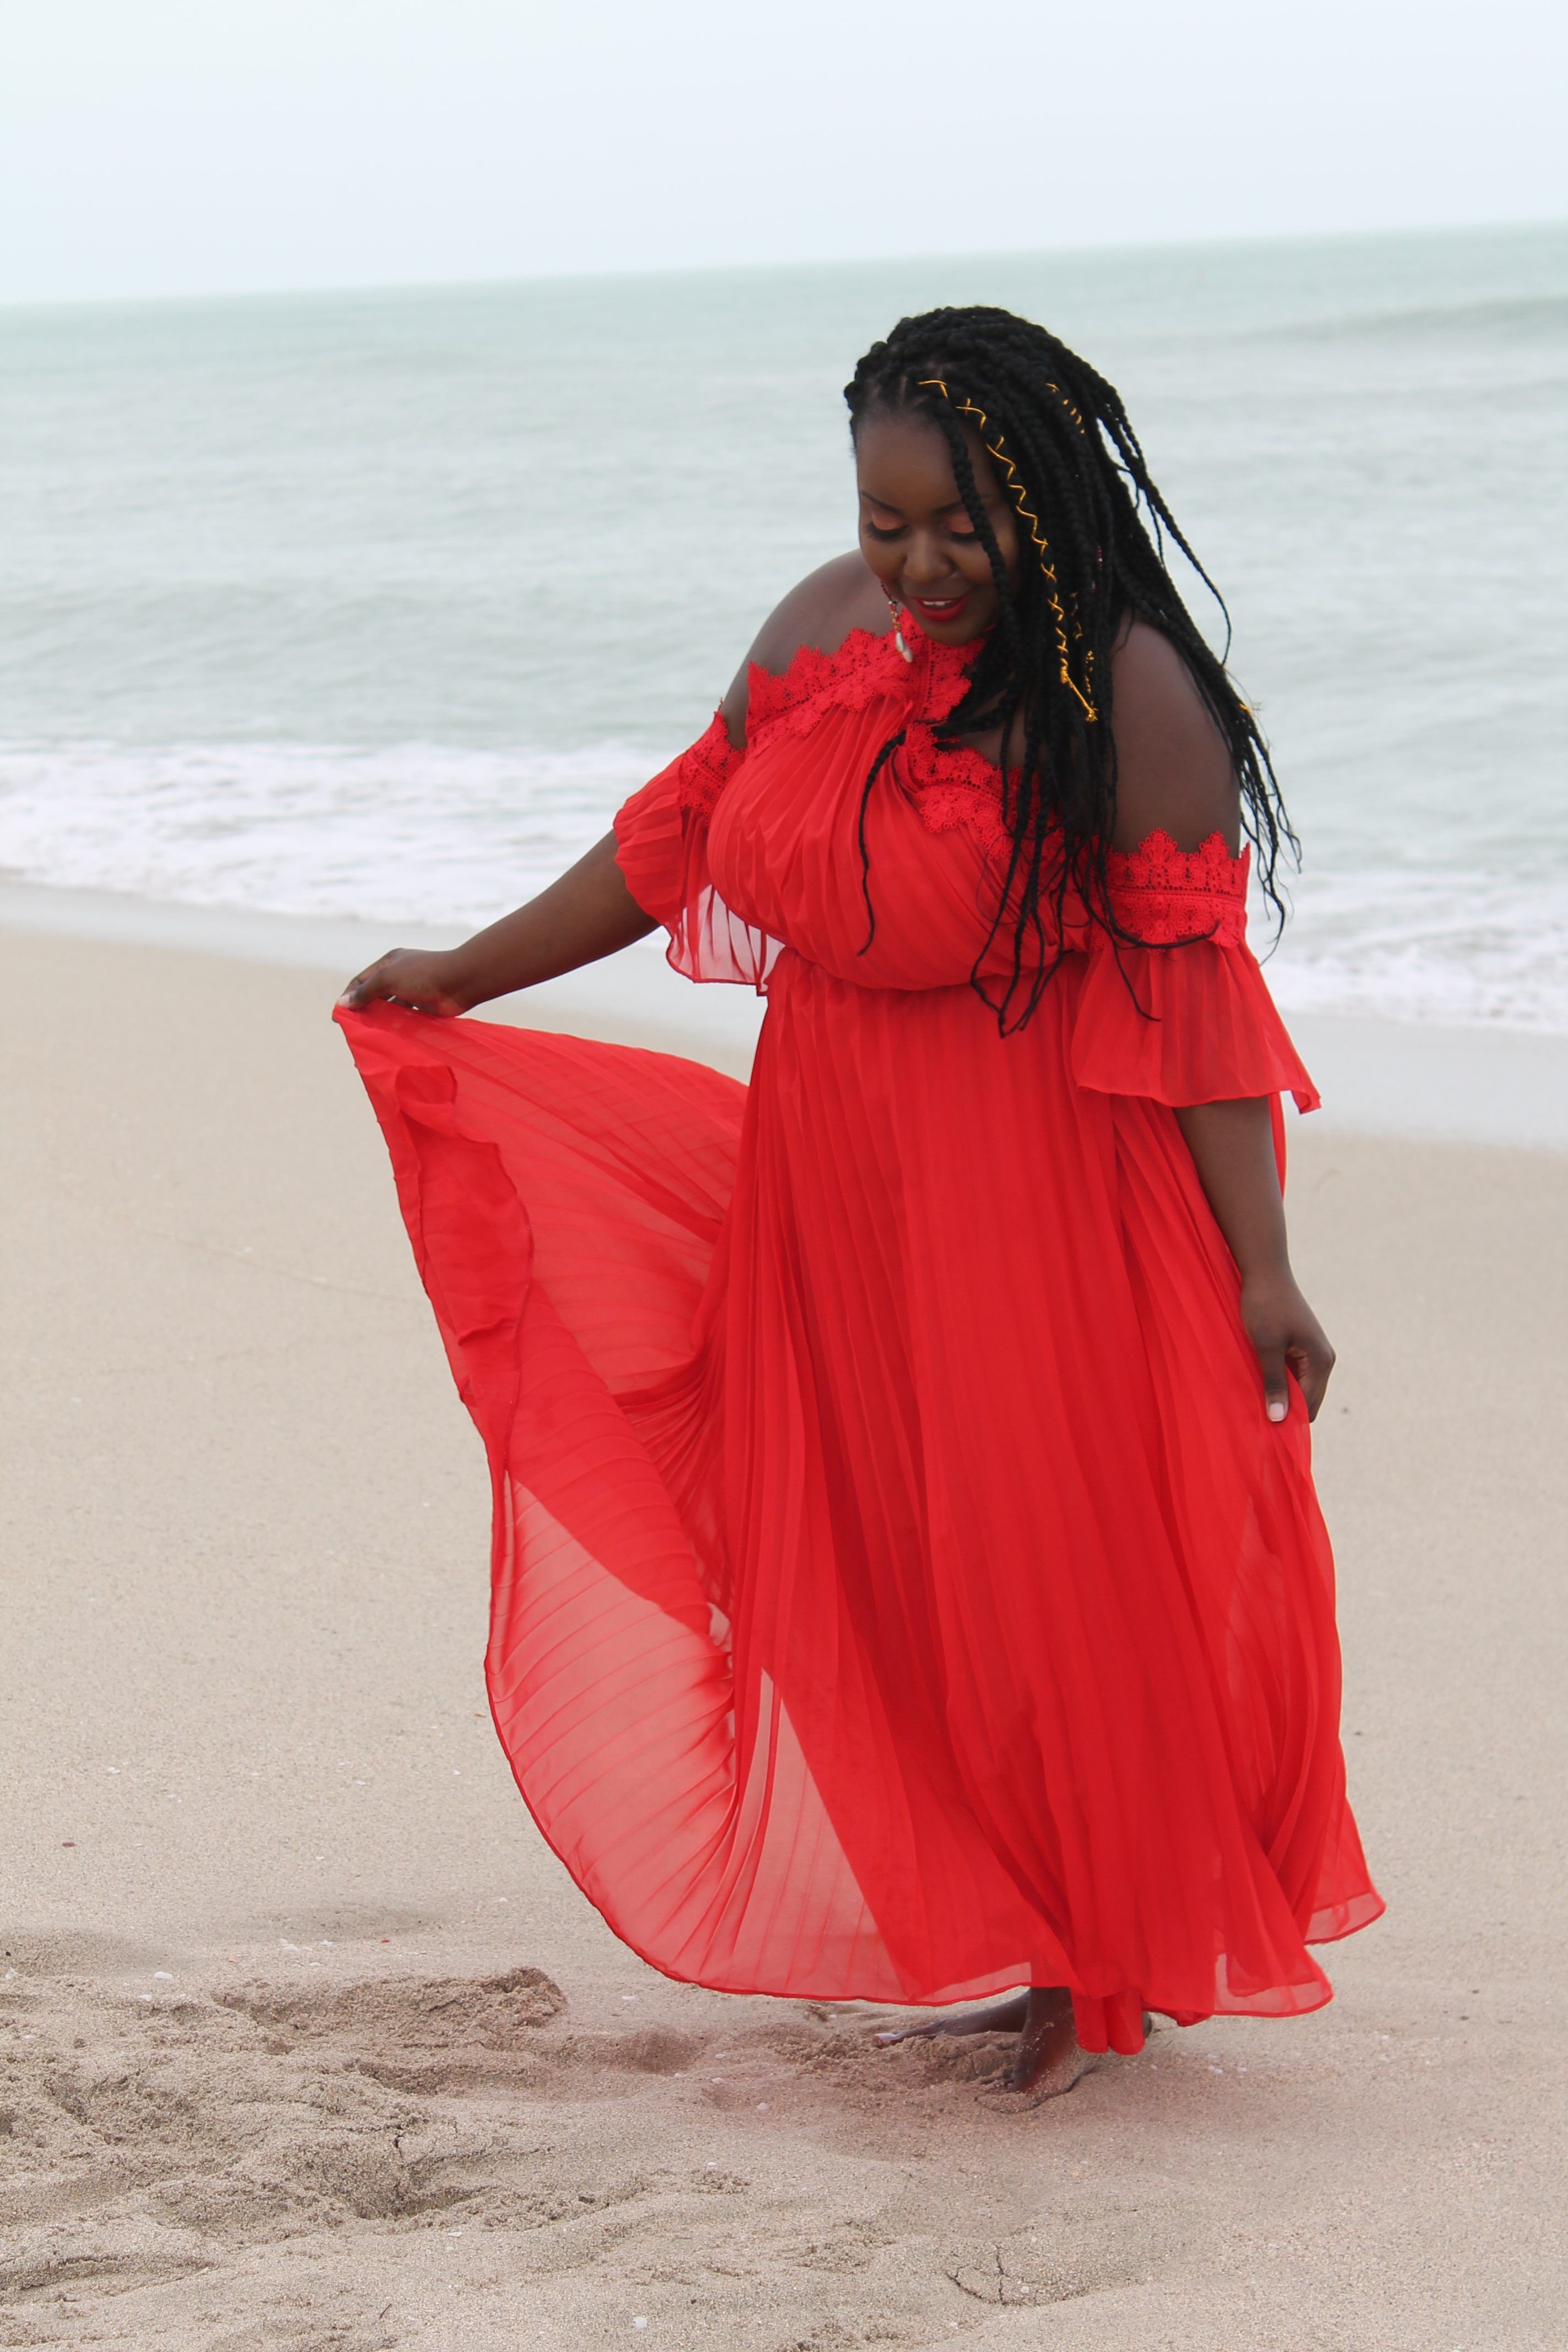 plus size fashion blogs 2017, beautiful curvy girls, how to fill the eye brow of a dark skin, beautiful plus size dark skin girls, plus size black bloggers, clothes for curvy girls, curvy girl fashion clothing, plus blog, plus size fashion tips, plus size women blog, curvy women fashion, plus blog, curvy girl fashion blog, style plus curves, plus size fashion instagram, curvy girl blog, bbw blog, plus size street fashion, plus size beauty blog, plus size fashion ideas, curvy girl summer outfits, plus size fashion magazine, plus fashion bloggers, boohoo, rebdolls bodycon maxi dresses, pleated wedding party dress red gown